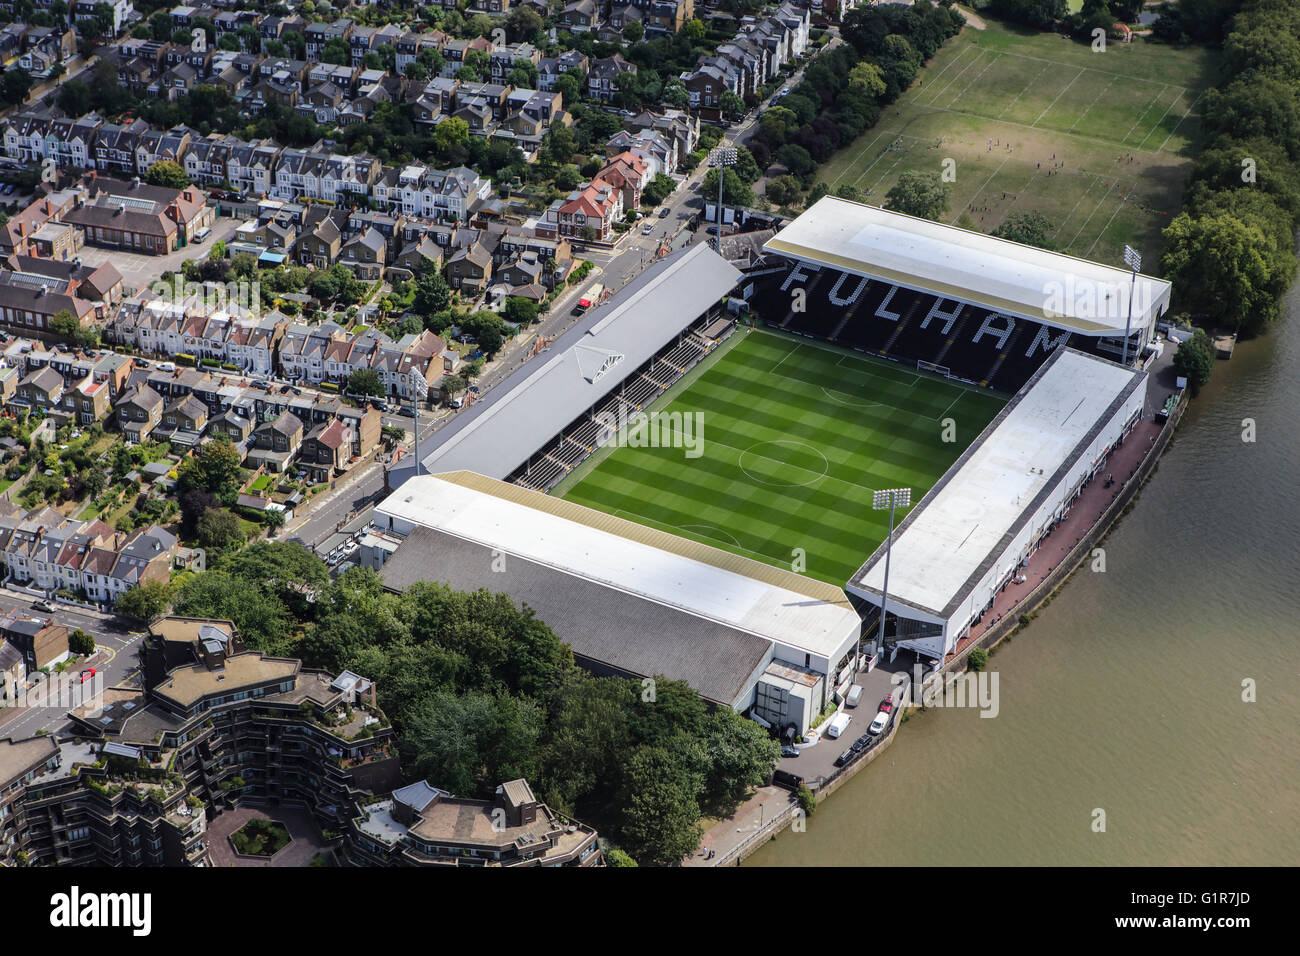 An aerial view of Craven Cottage, home of Fulham Football Club - Stock Image